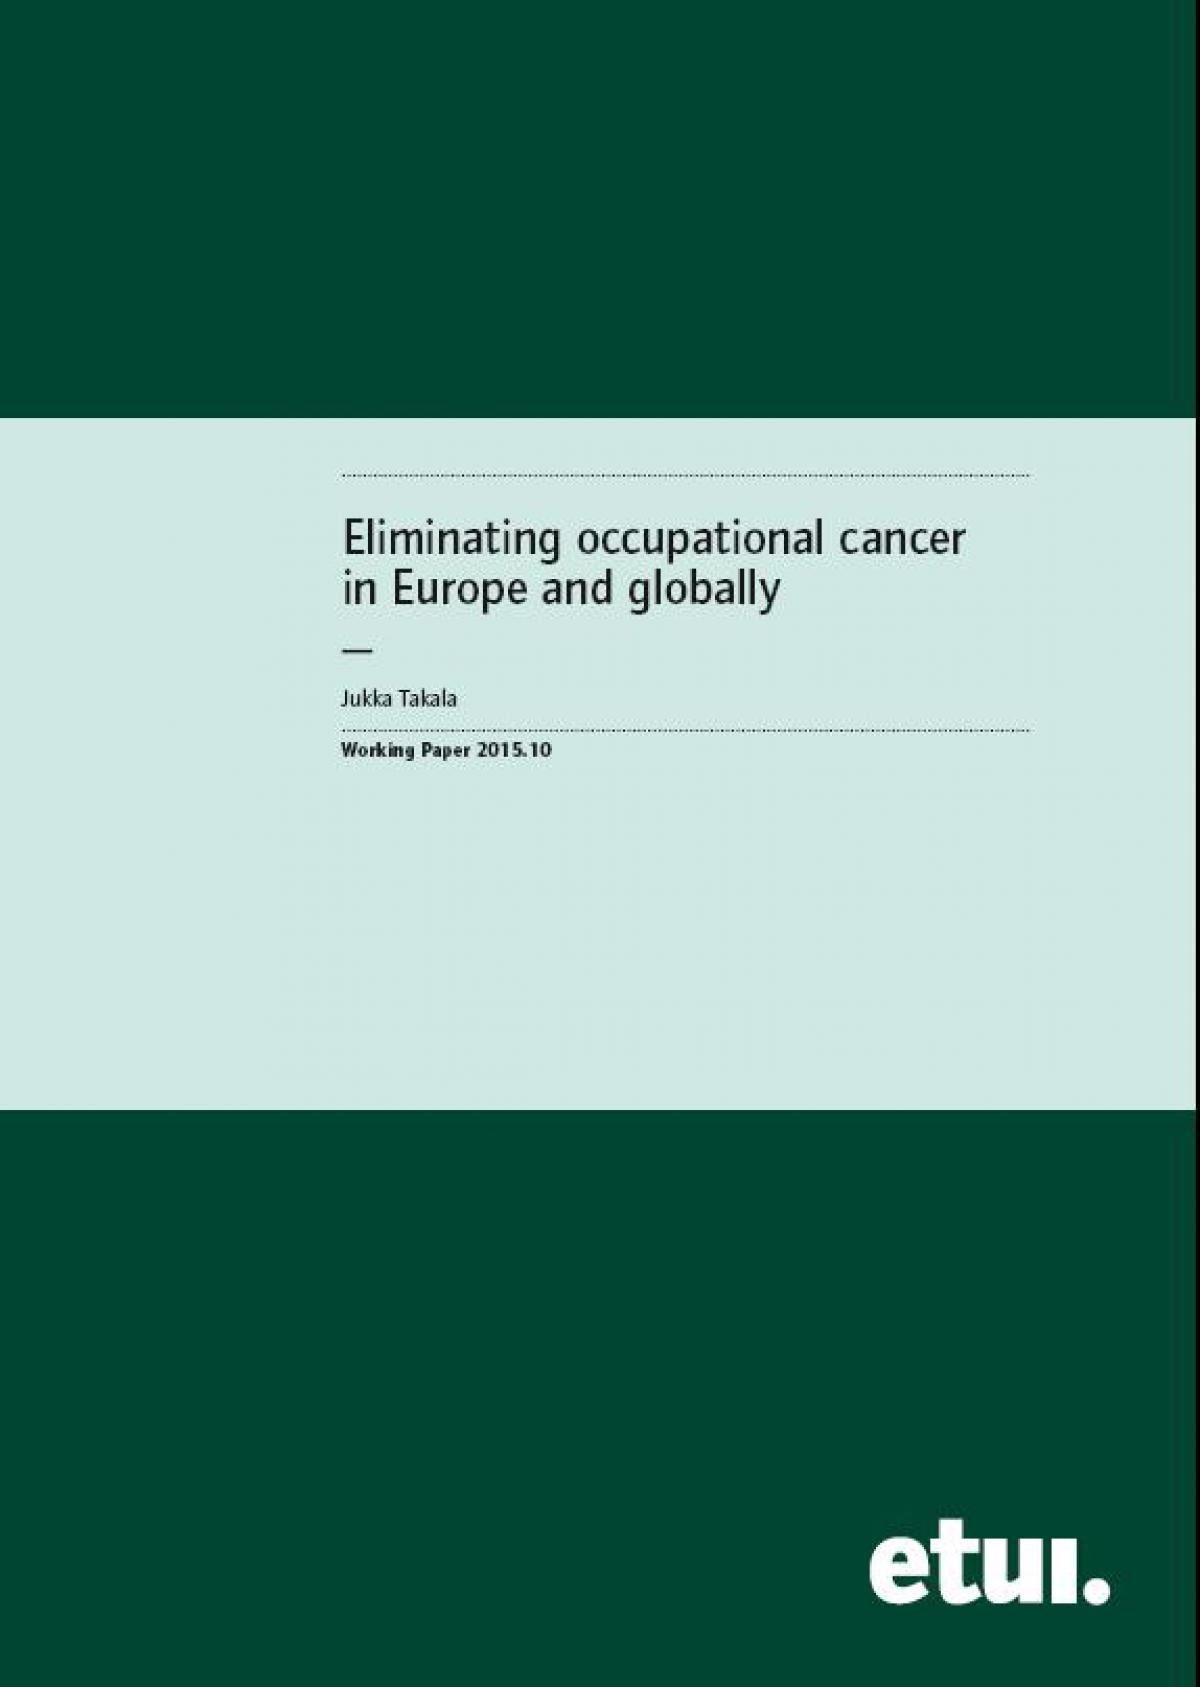 Eliminating occupational cancer in Europe and globally